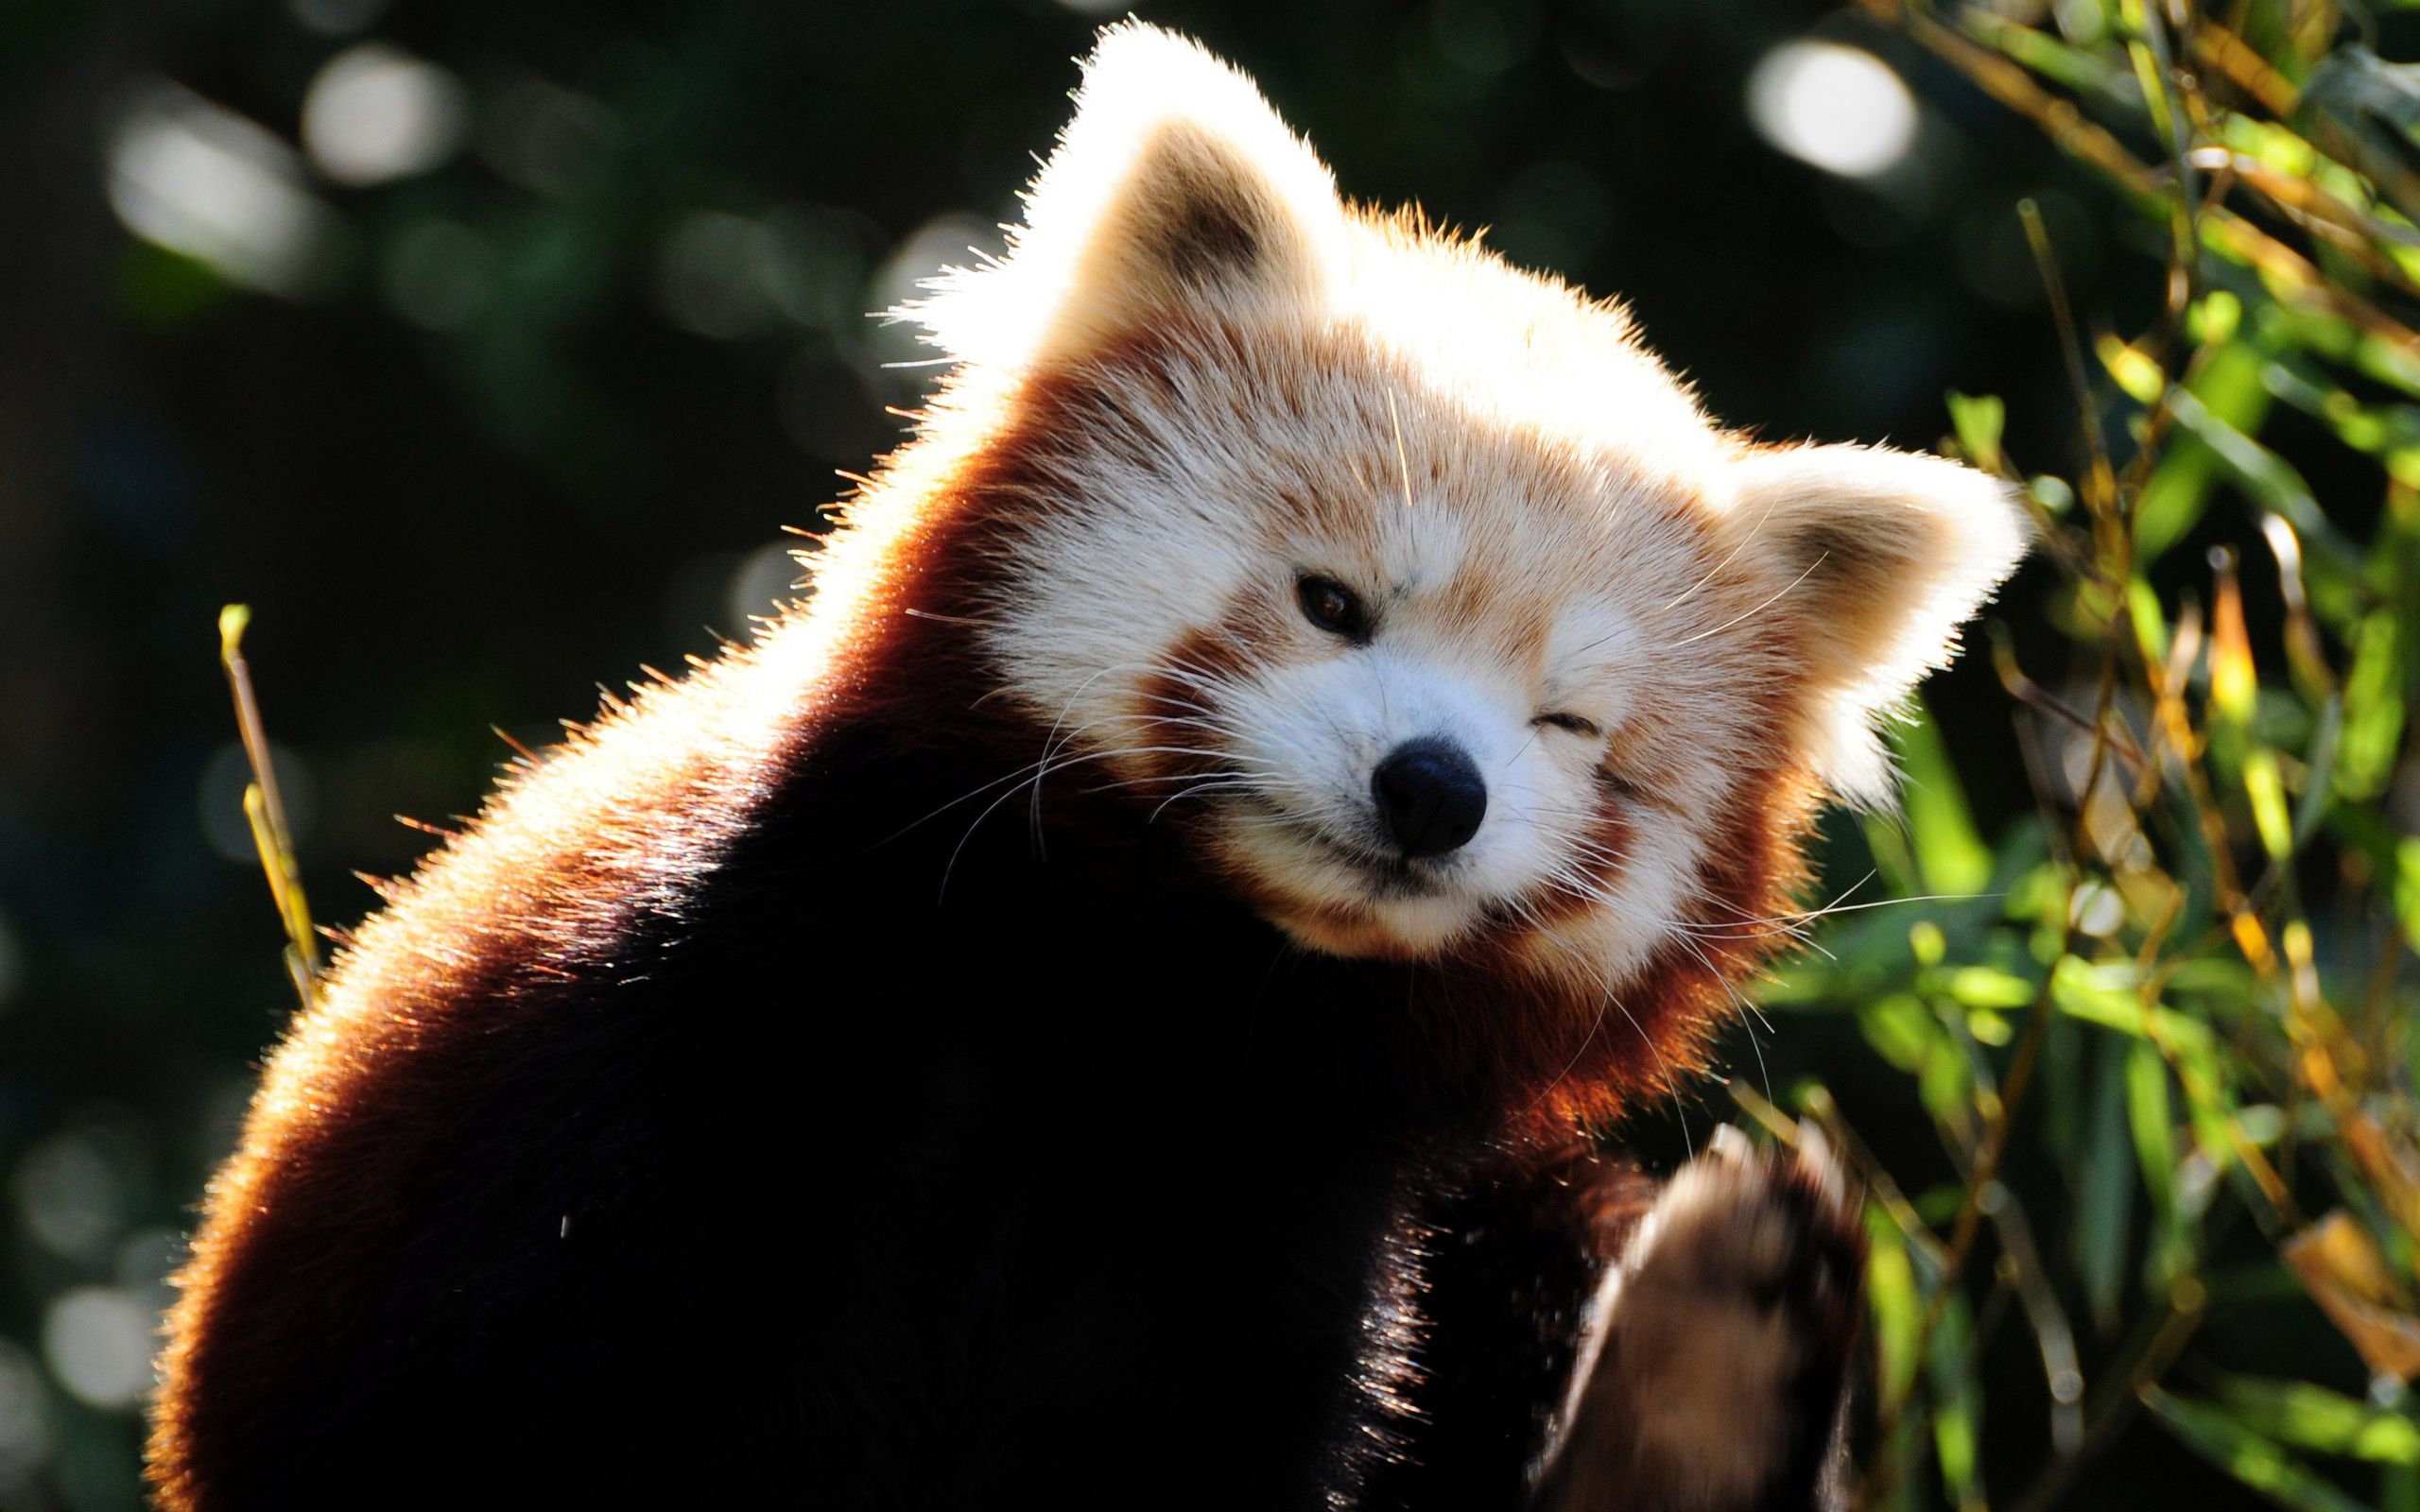 69346 download wallpaper Animals, Fox, Fiery, Fire, Small, Petite, Panda screensavers and pictures for free